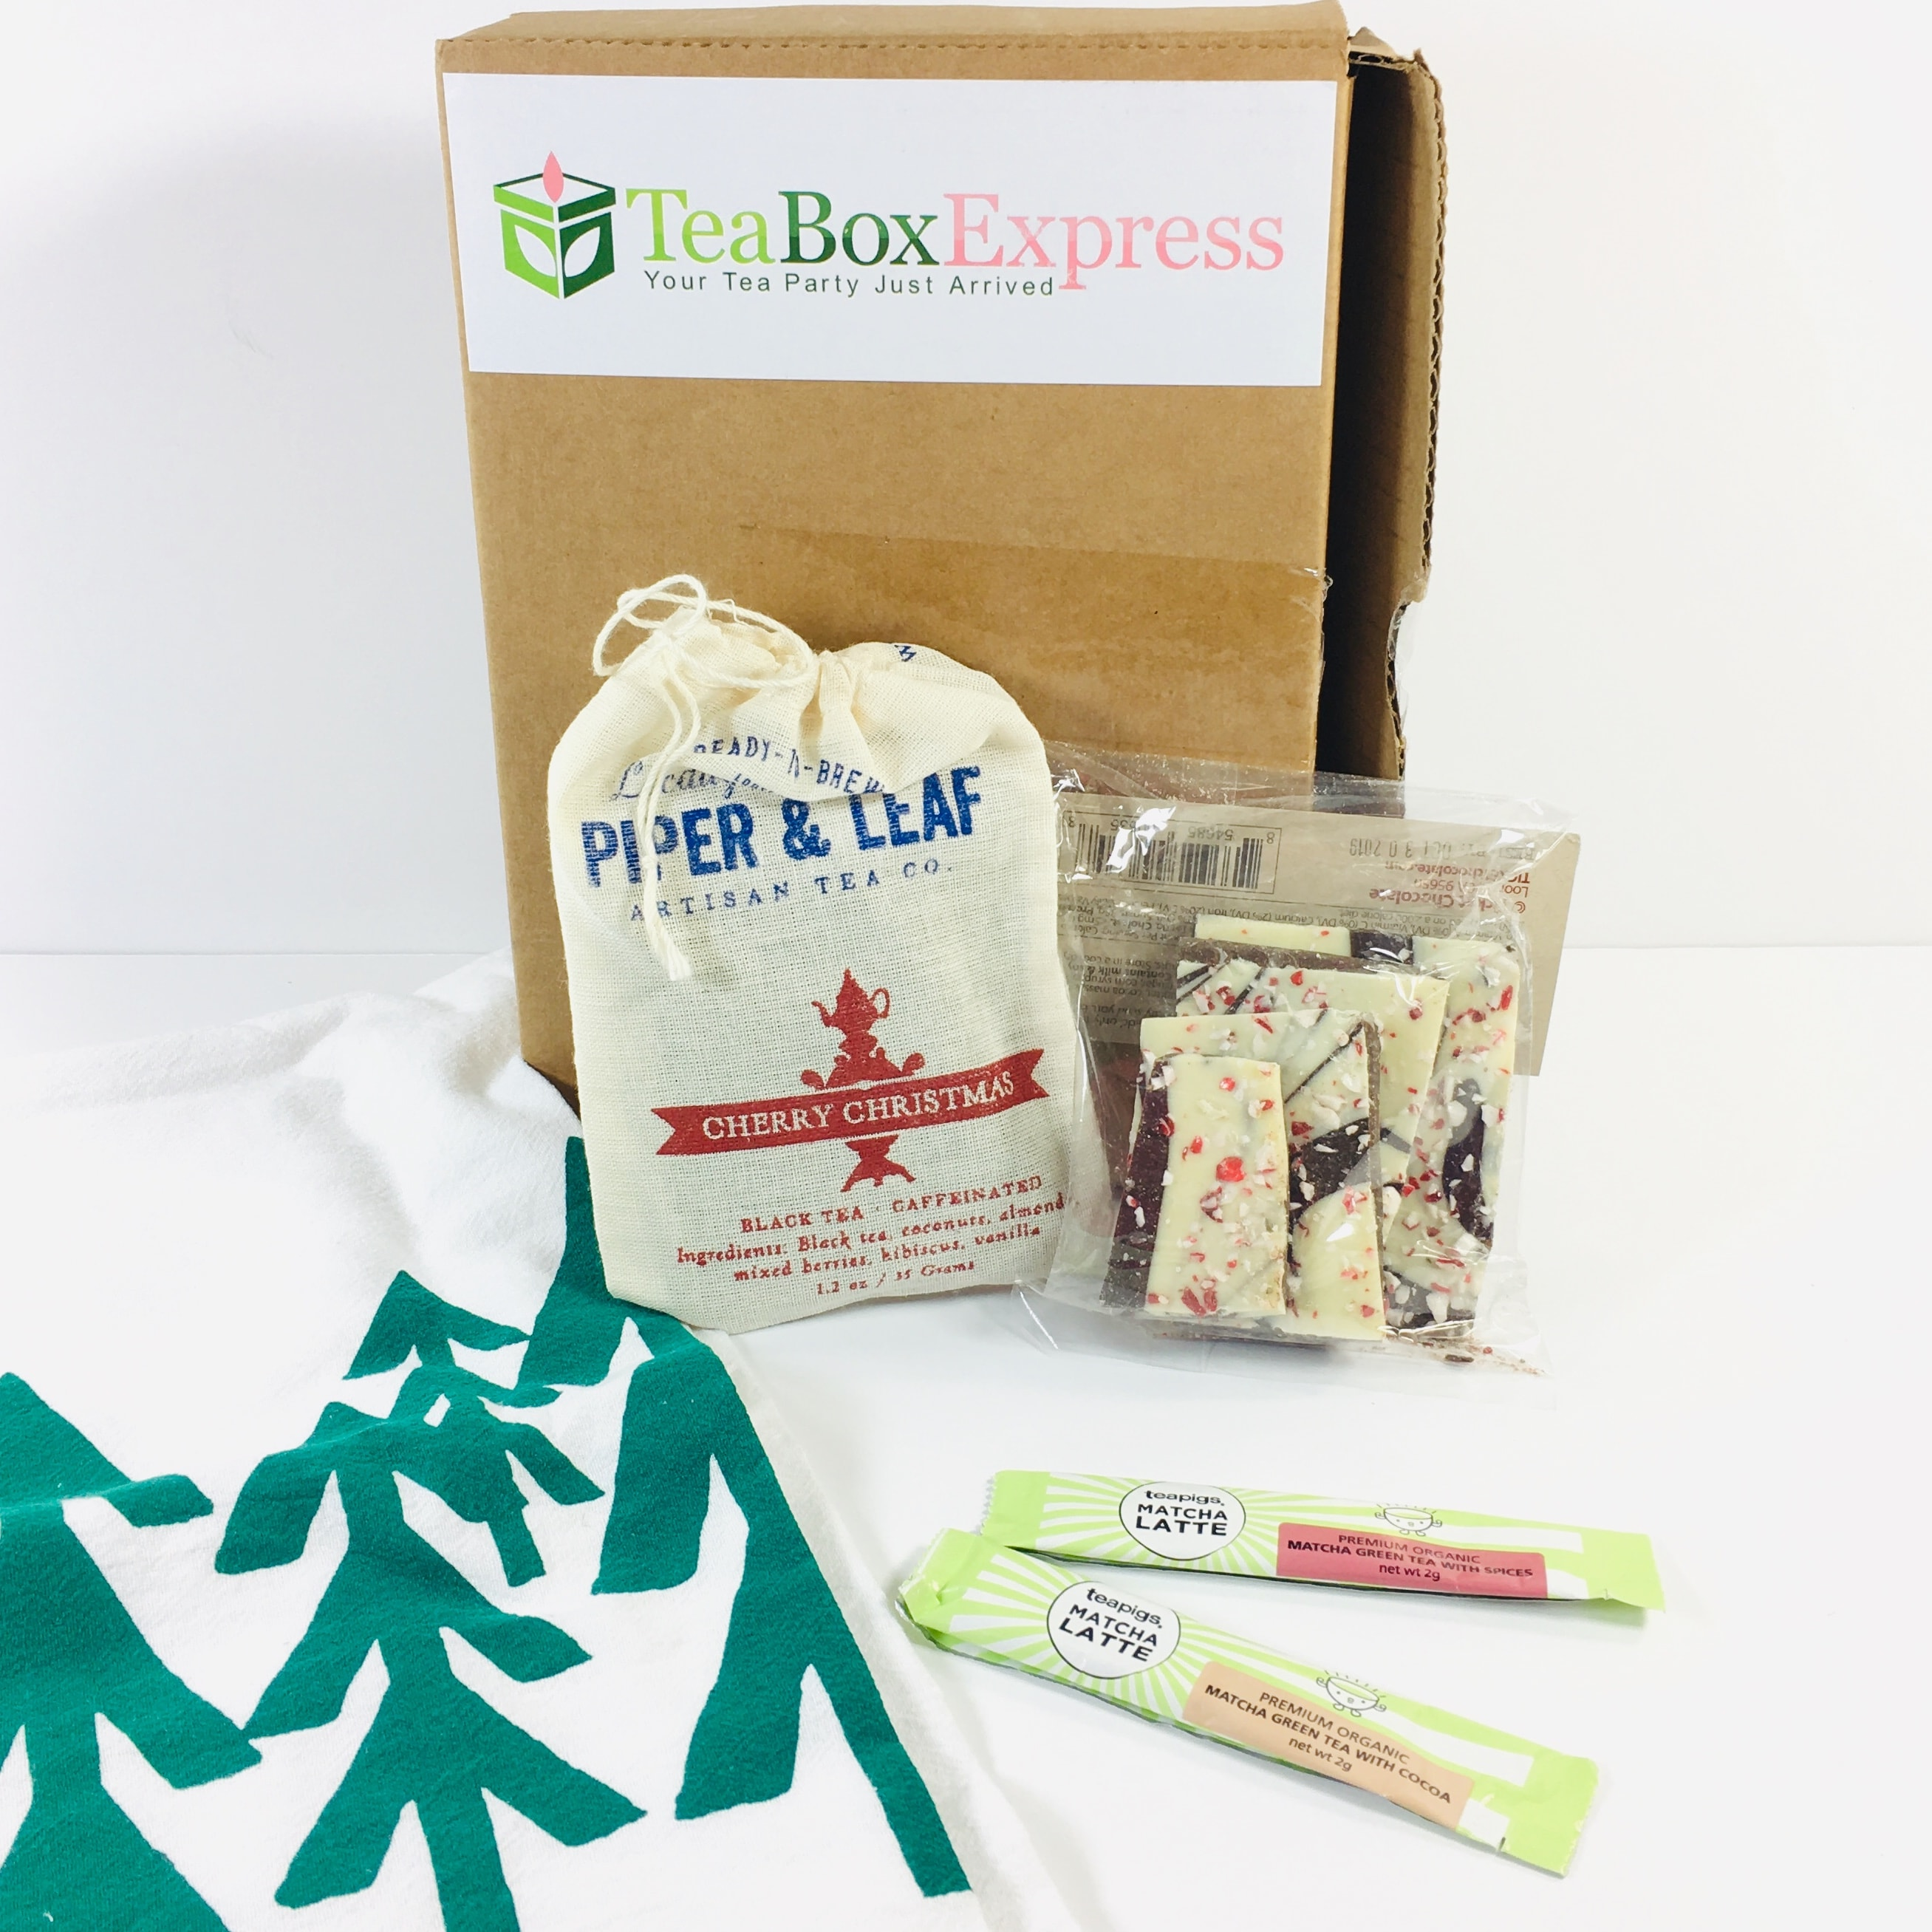 Tea Box Express December 2018 Subscription Review & Coupon